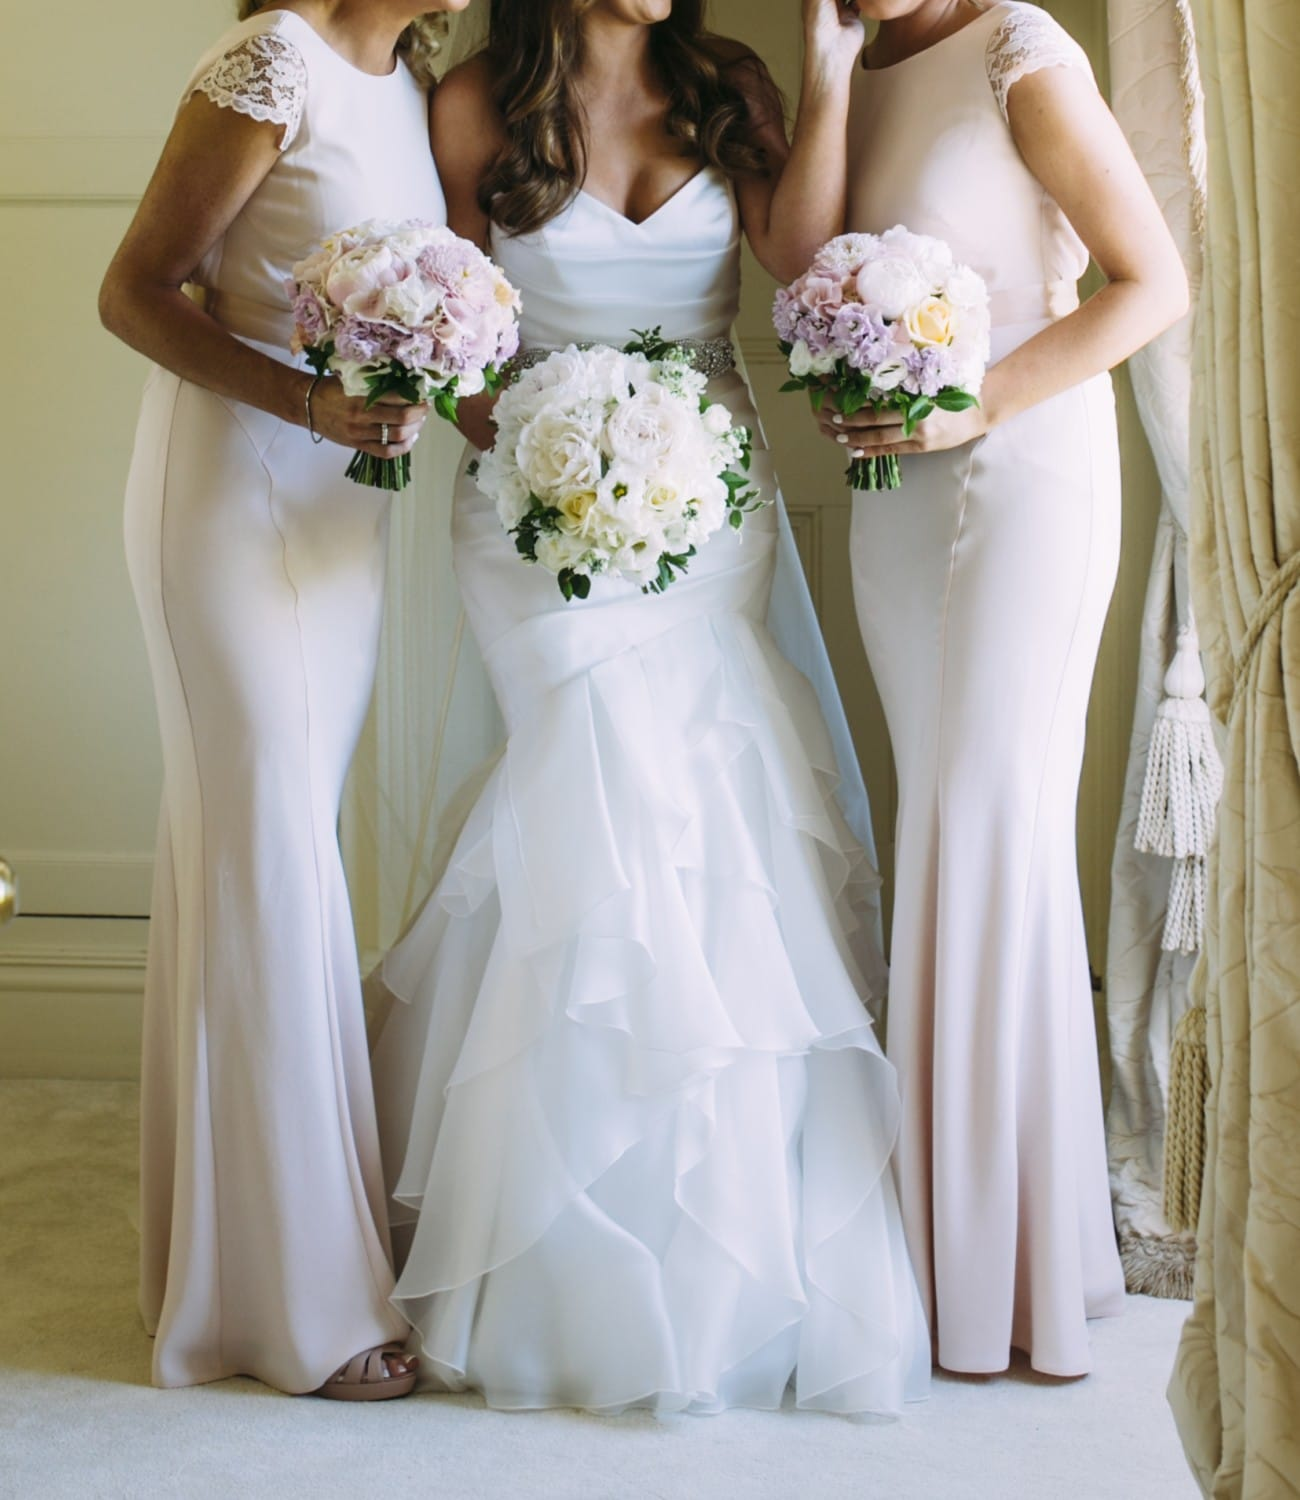 Coast bridesmaid dresses sell my wedding dress online for Sell wedding dress online